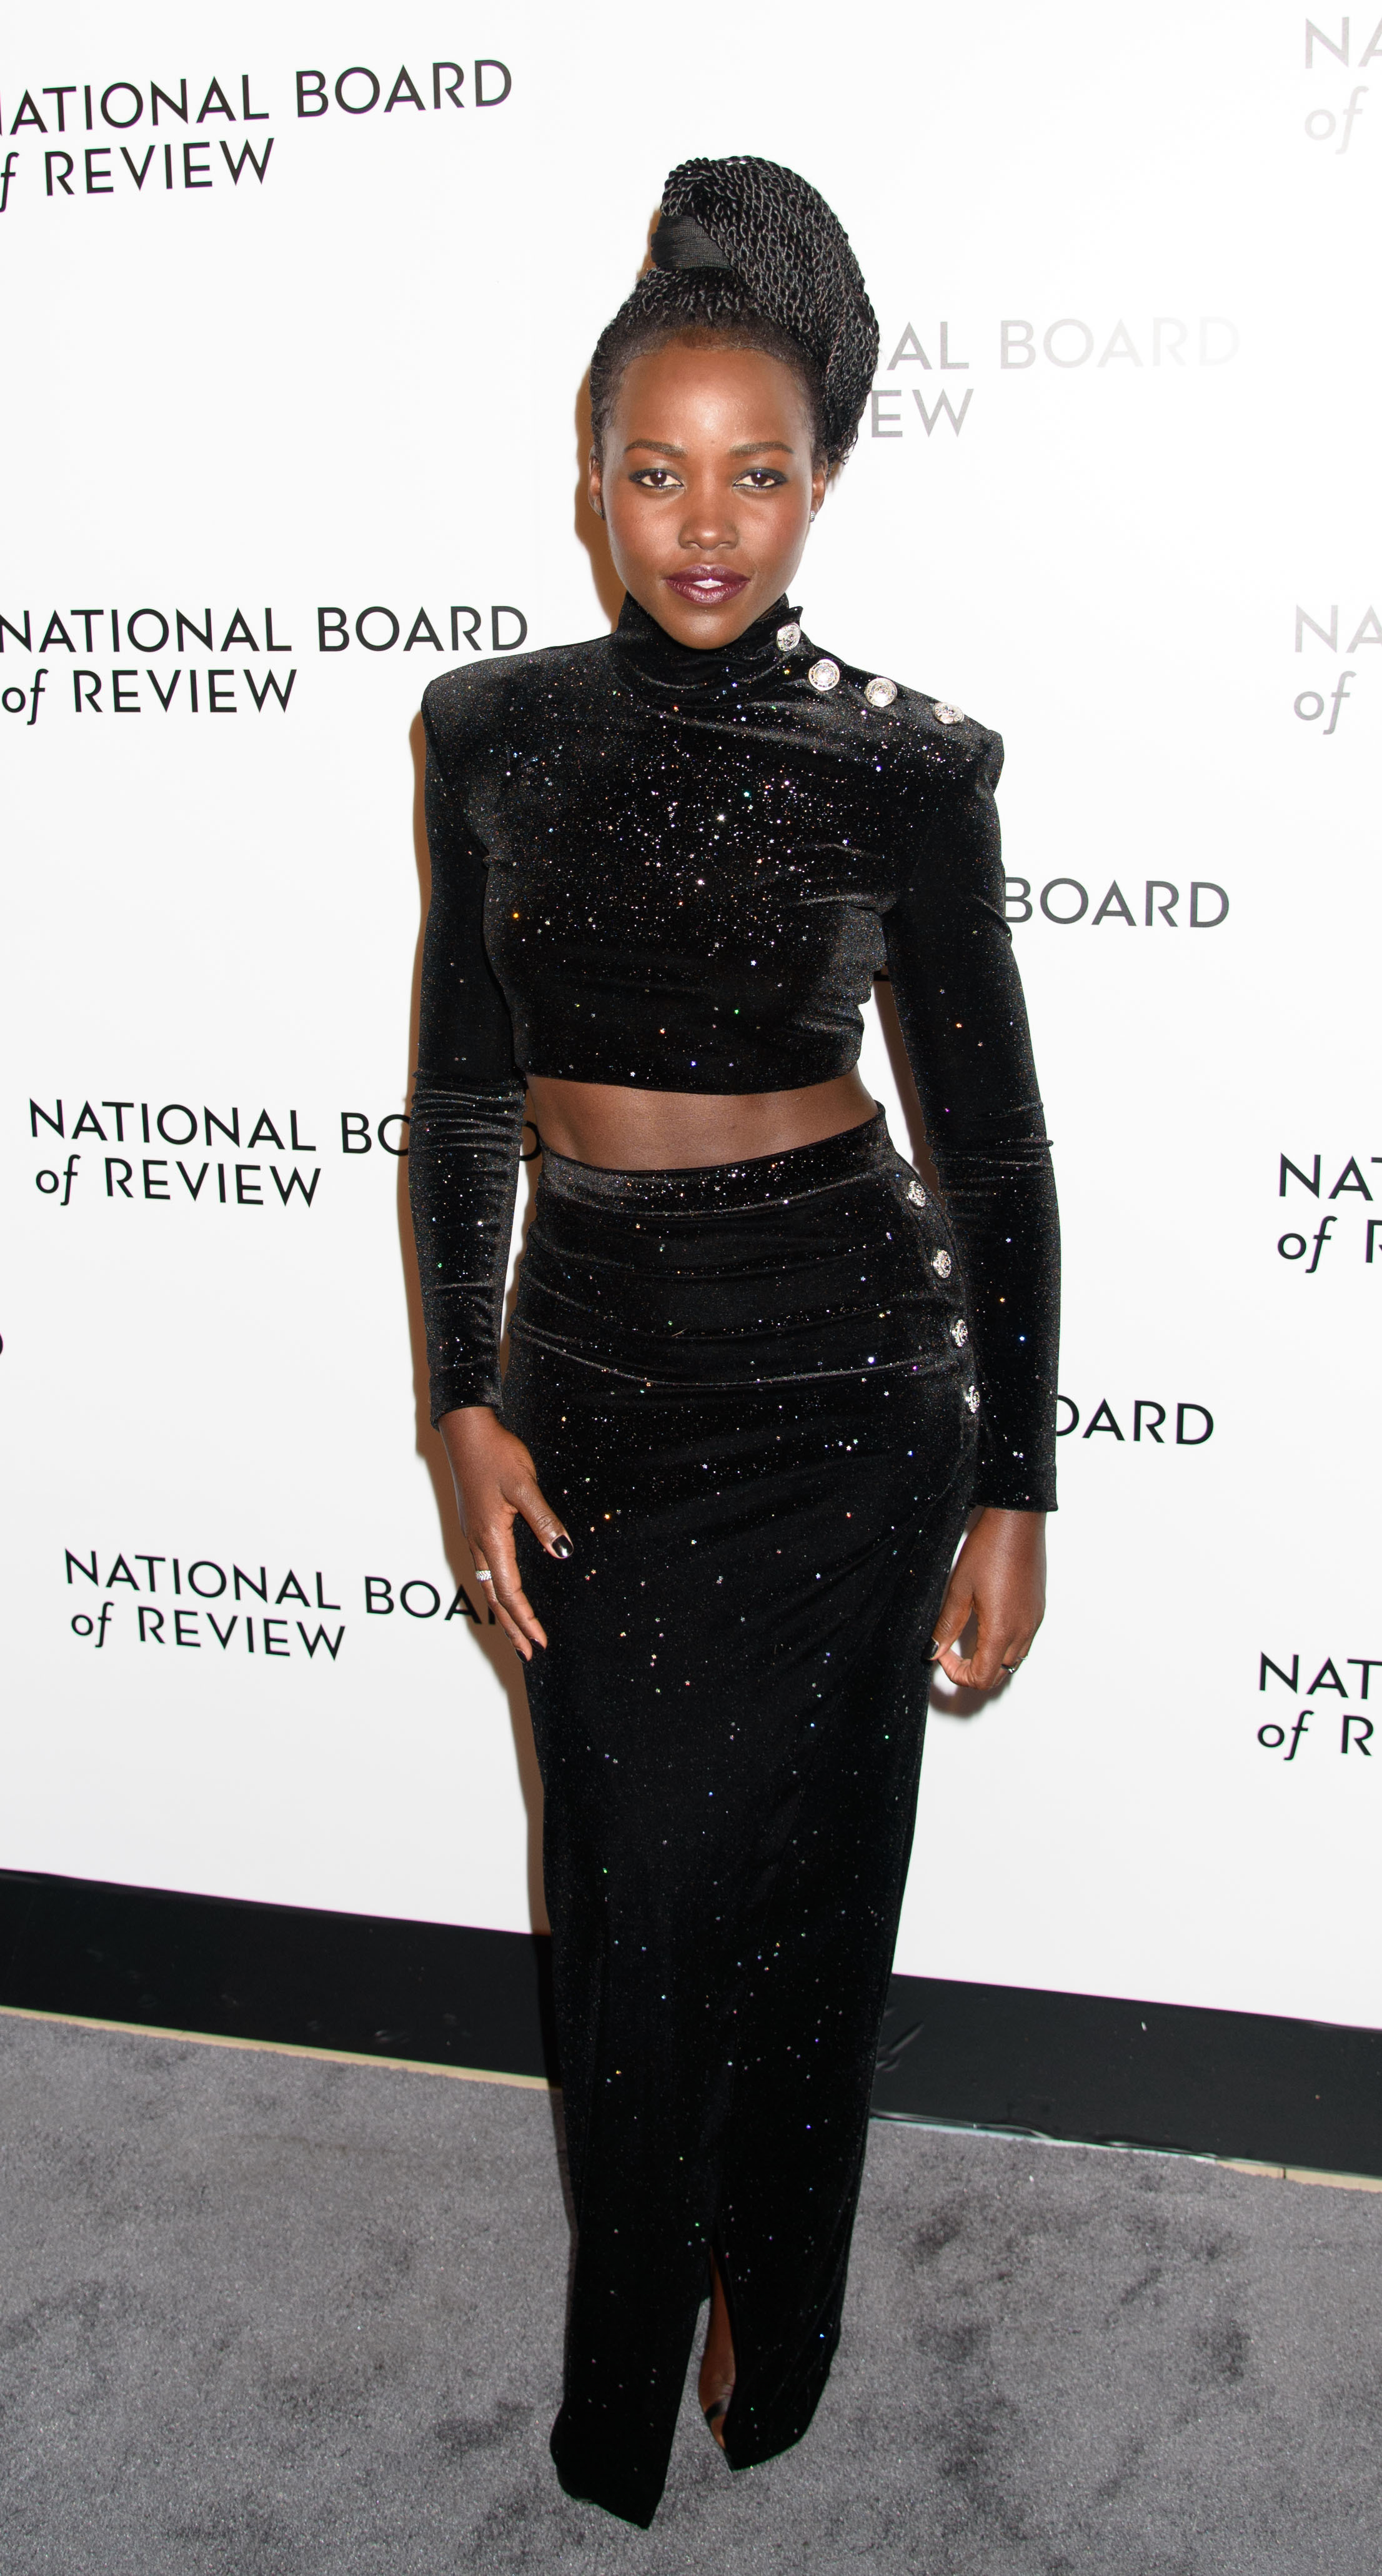 Lupita Nyong'o attends the National Board of Review Awards in New York City on Jan. 10, 2018.